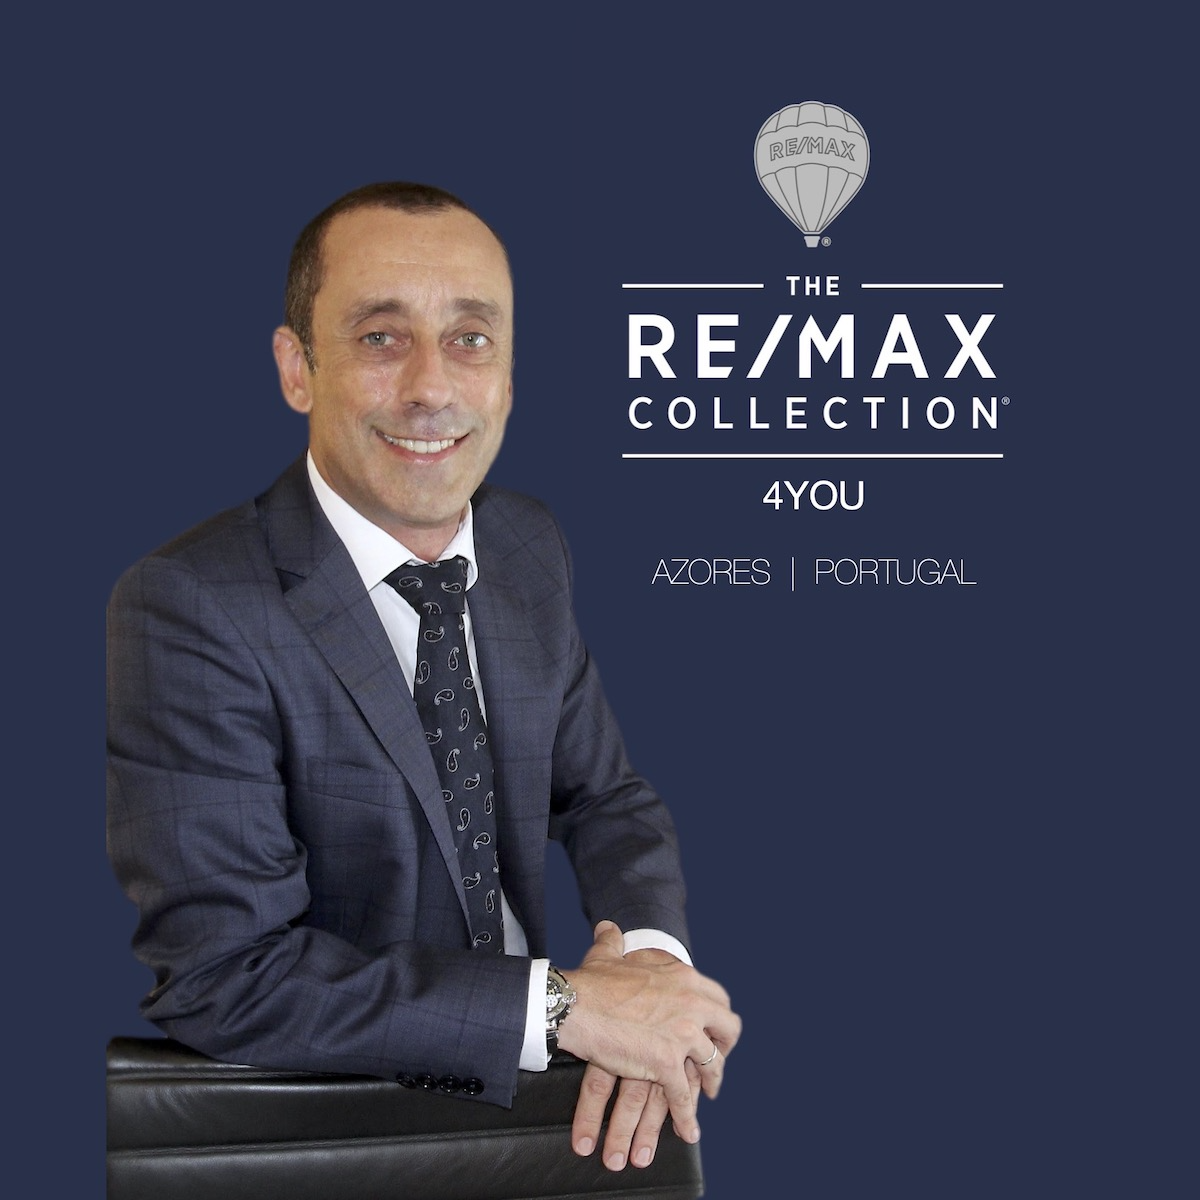 Remax 4you